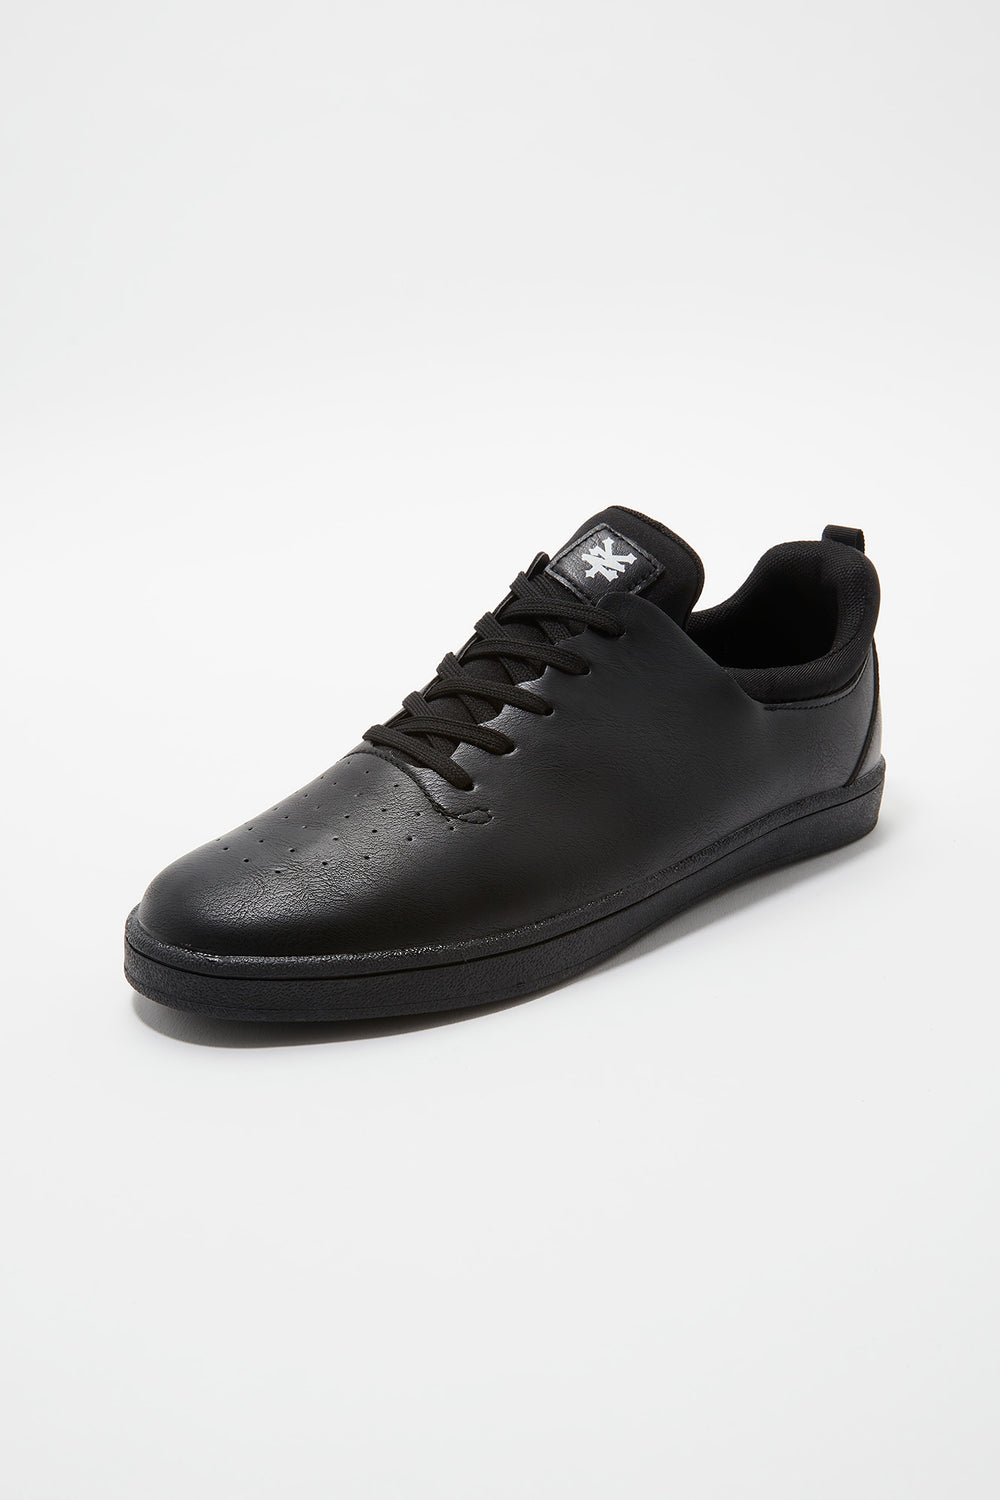 Zoo York Mens Skate Shoes Black